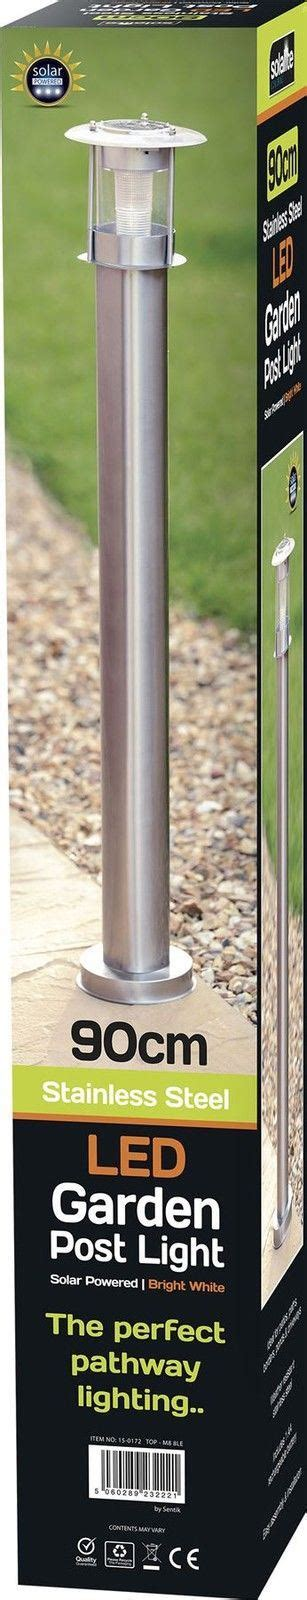 Solar Light Posts For Driveways 90cm Stainless Steel Outdoor Patio Driveway Garden Led